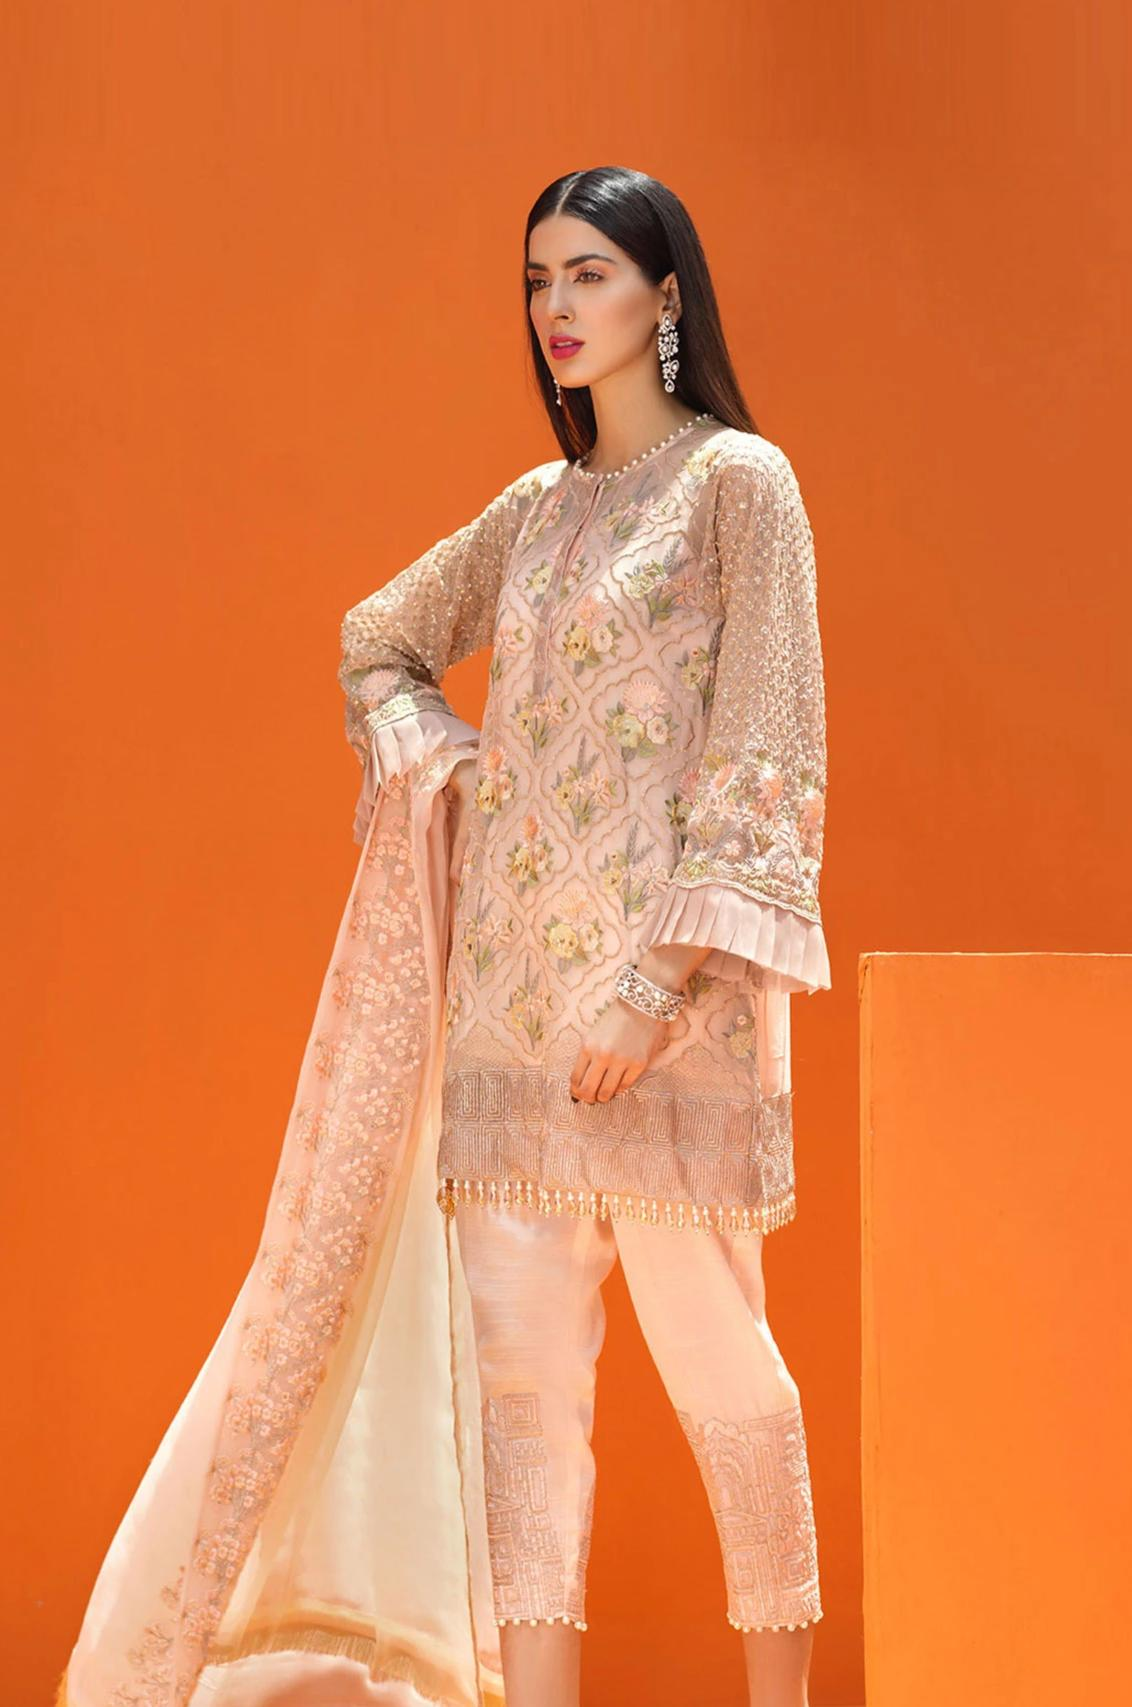 Coir 249-Heavy Embroided 3pc linen dress with embroided chiffon dupatta. - gracestore.pk